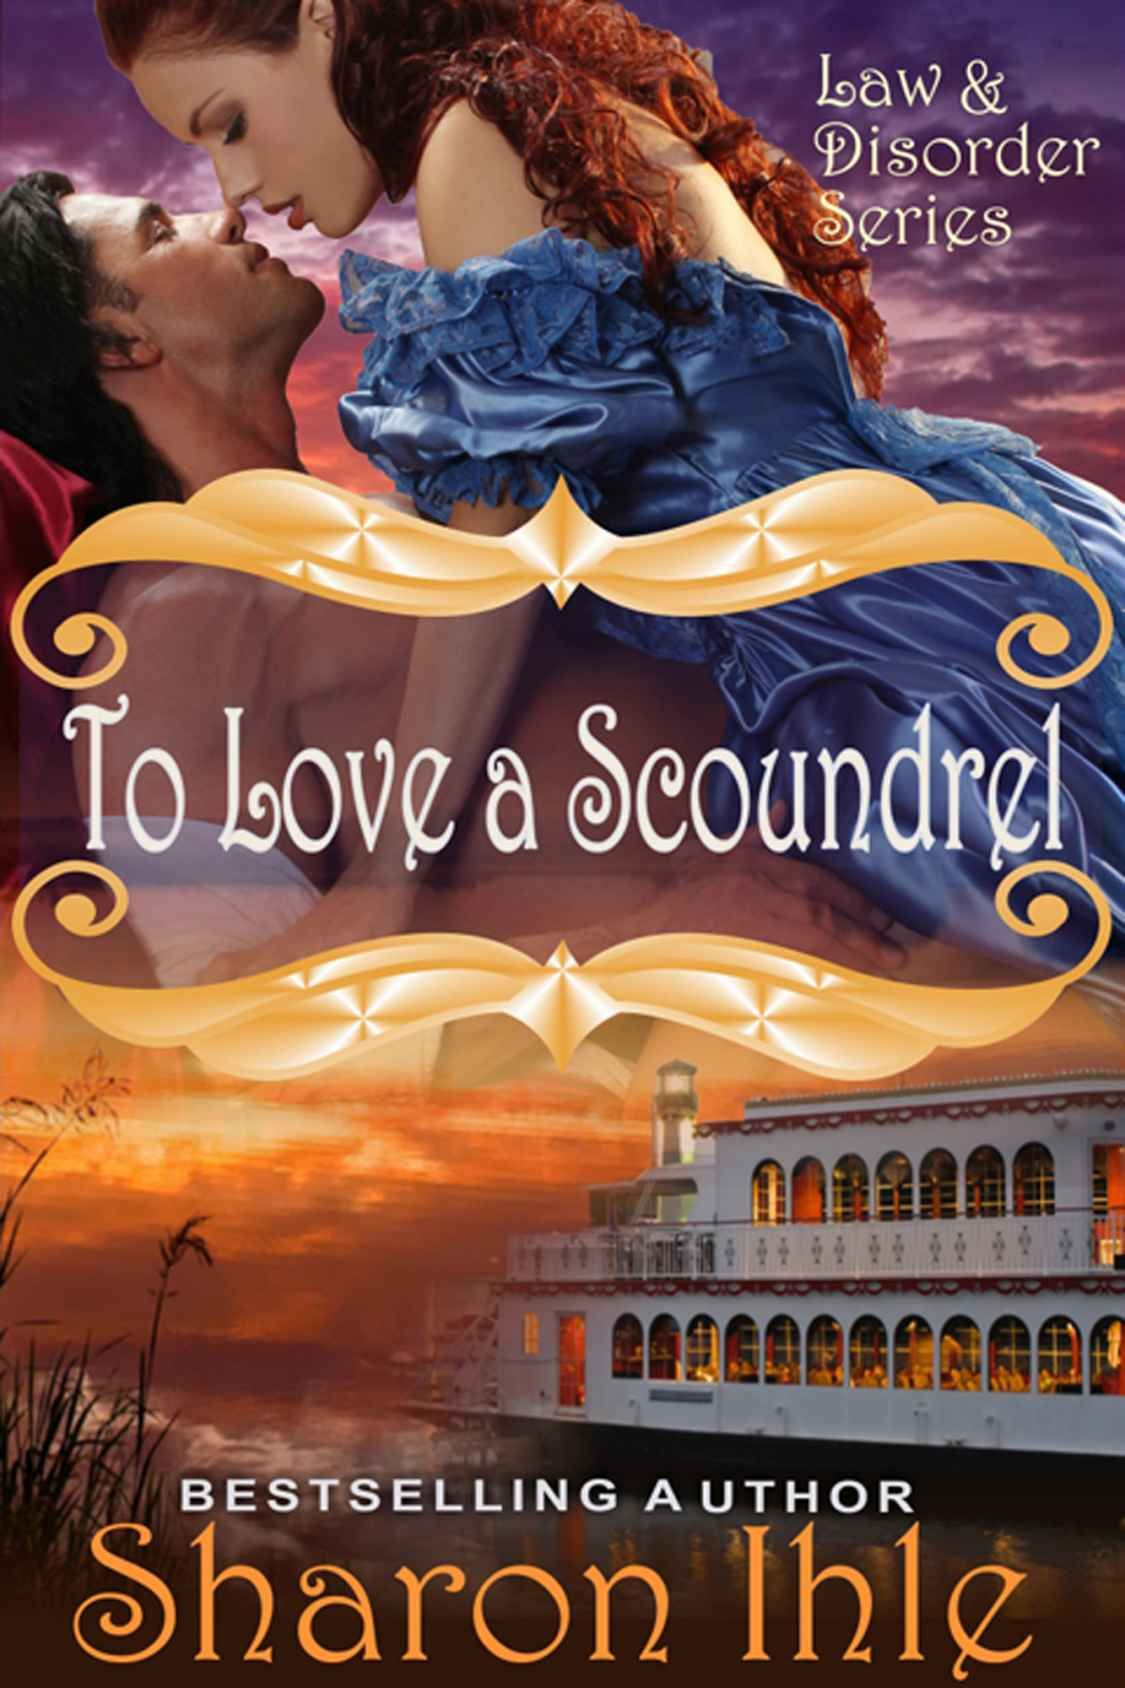 To Love A Scoundrel (The Law and Disorder Series, Book 4